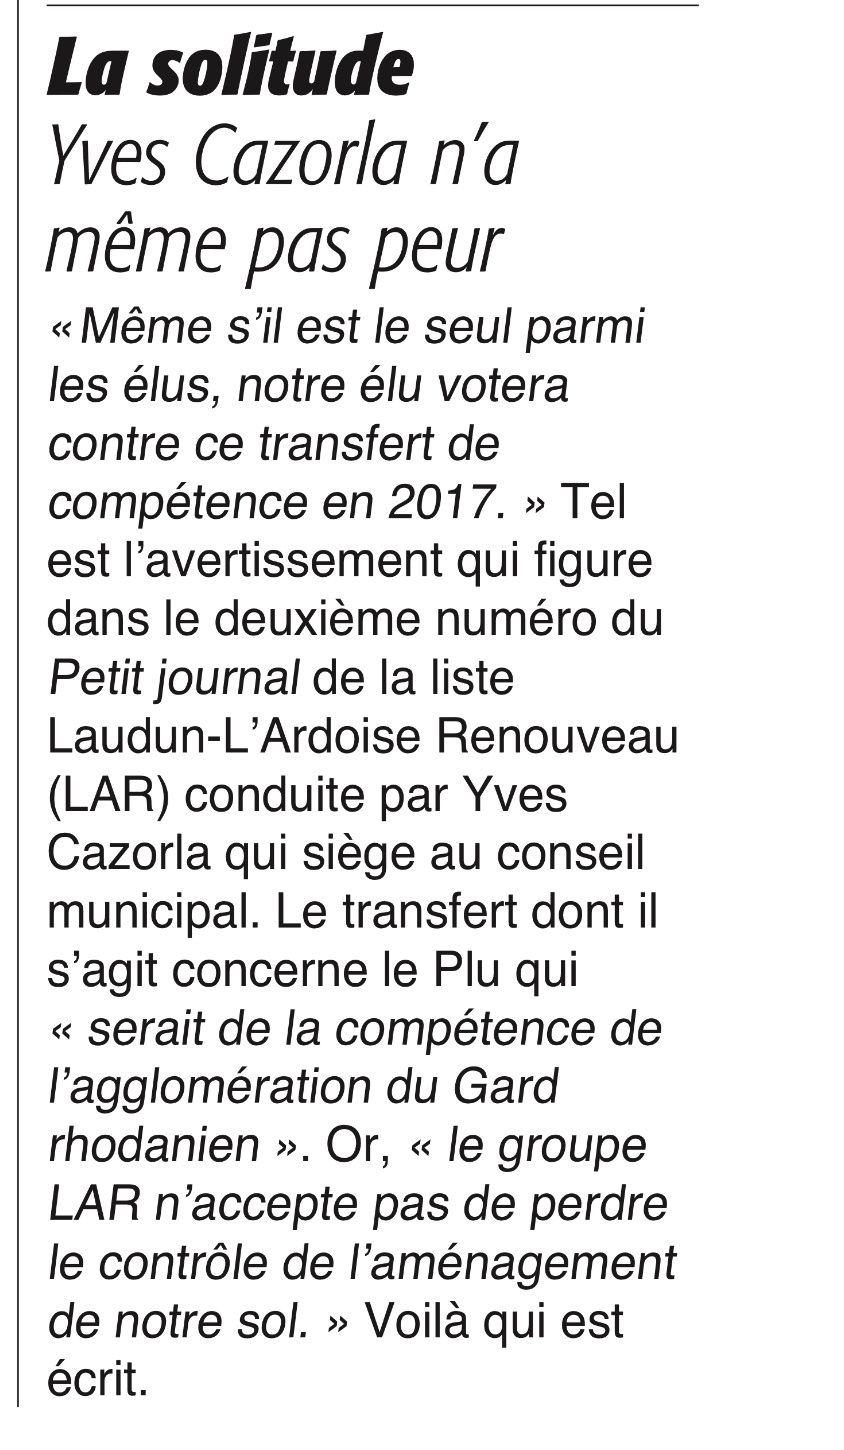 Article midi libre du 27 septembre 2016